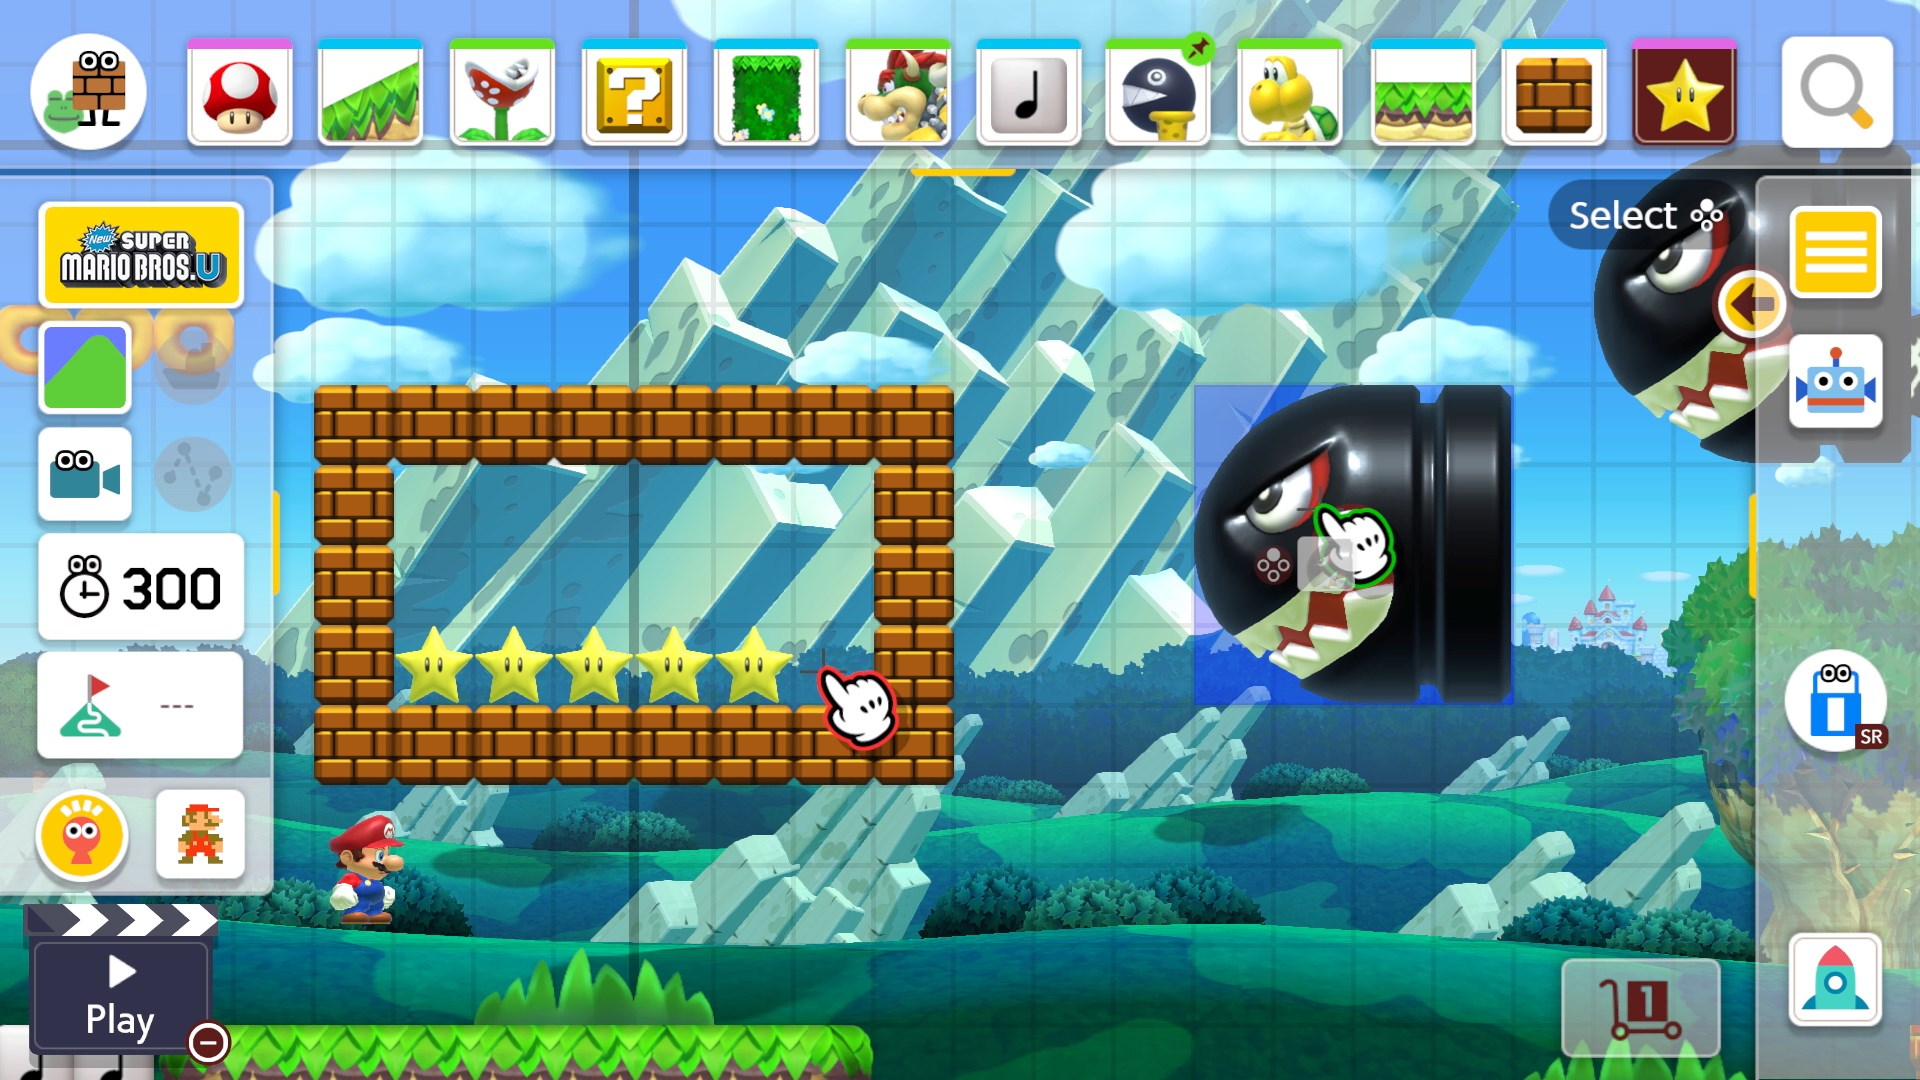 Super Mario Maker 2 Tips: How to Build Levels Like a Pro